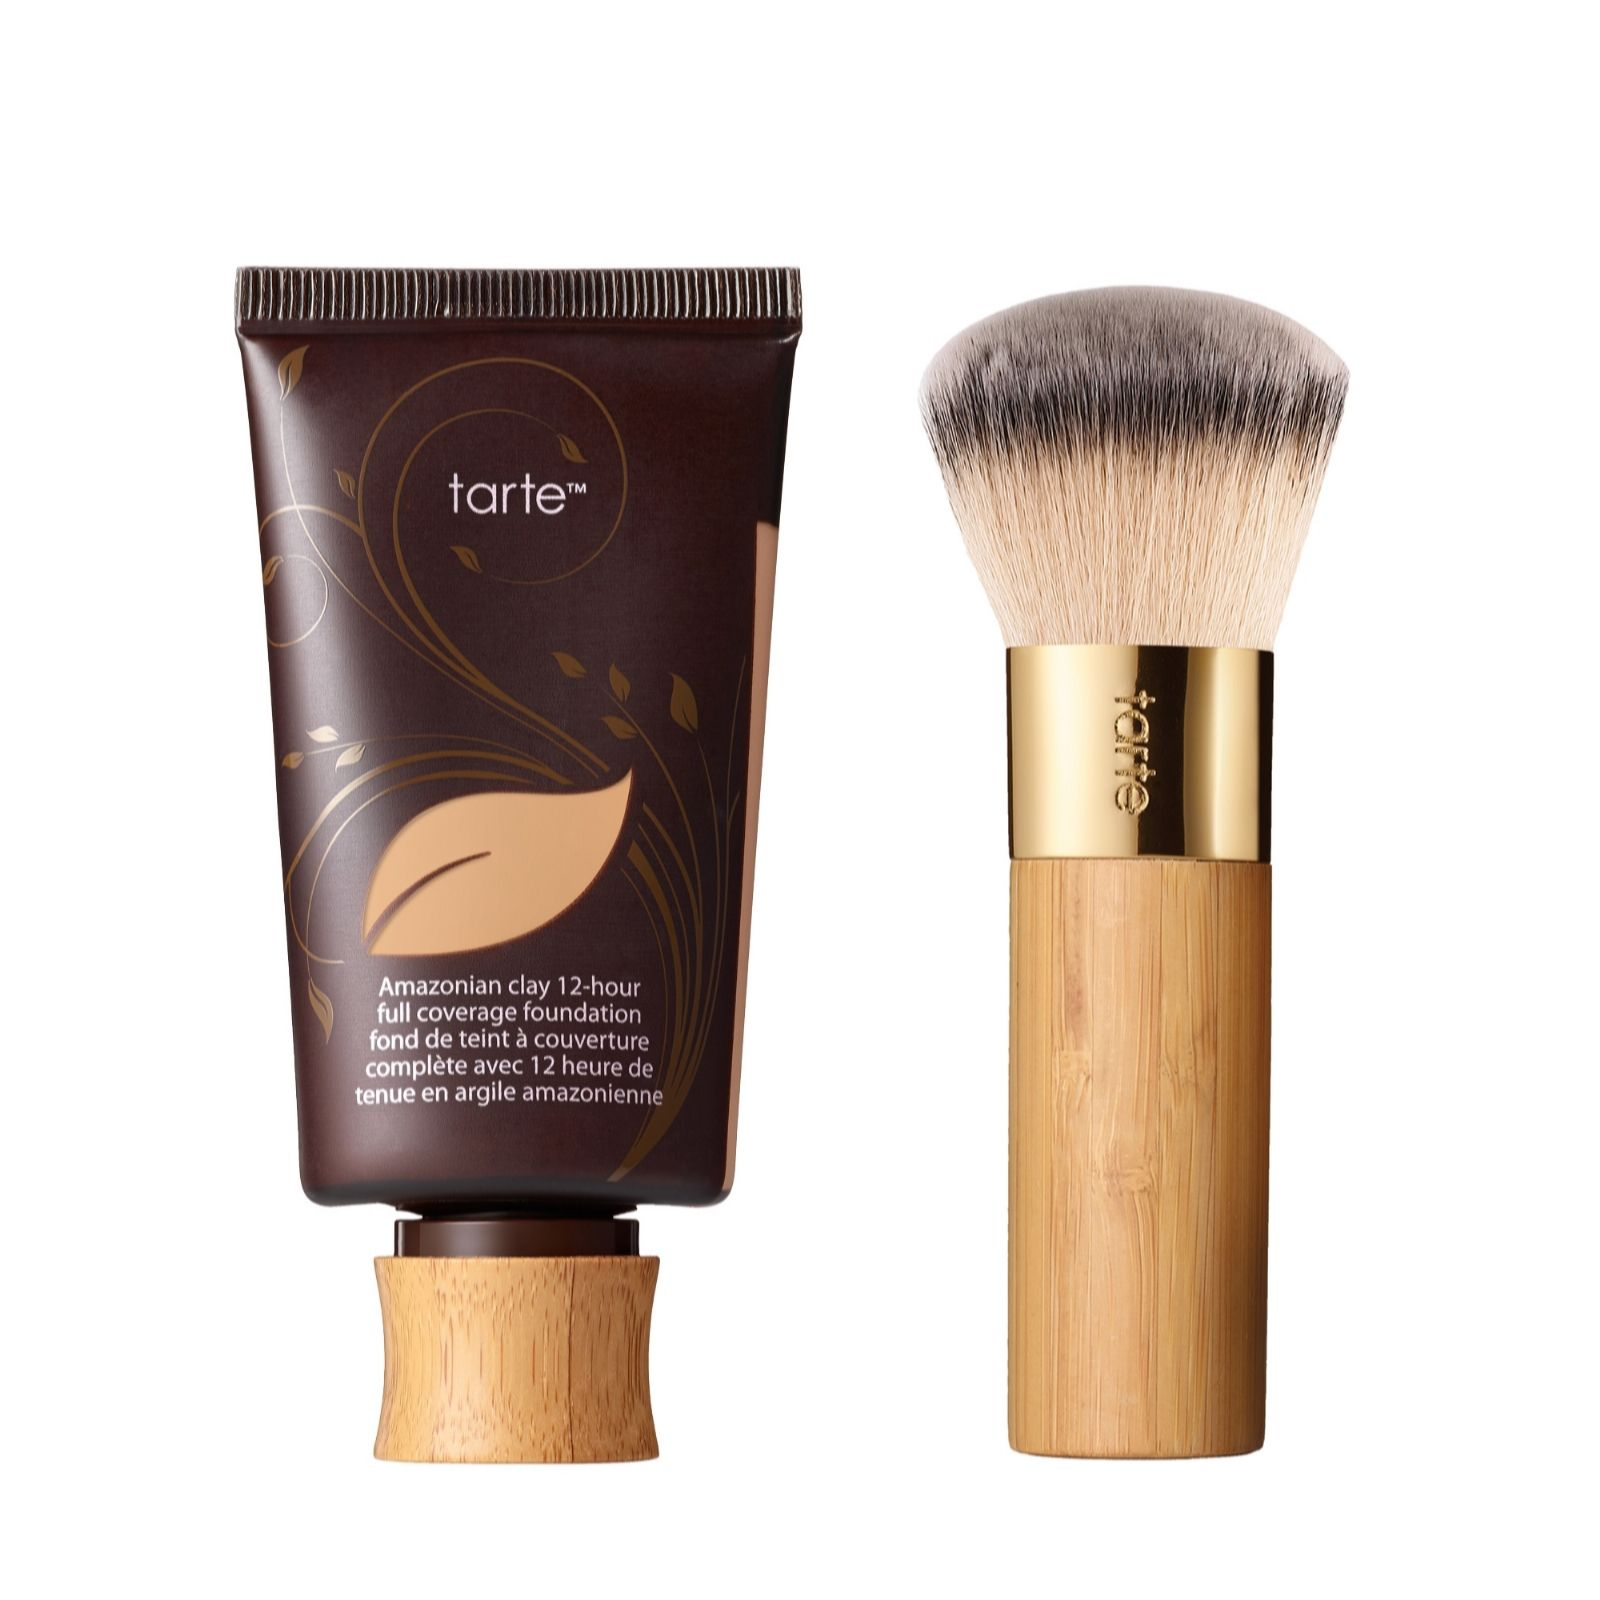 Tarte Amazonian Clay Full Coverage Foundation 50ml With Brush Qvc Uk